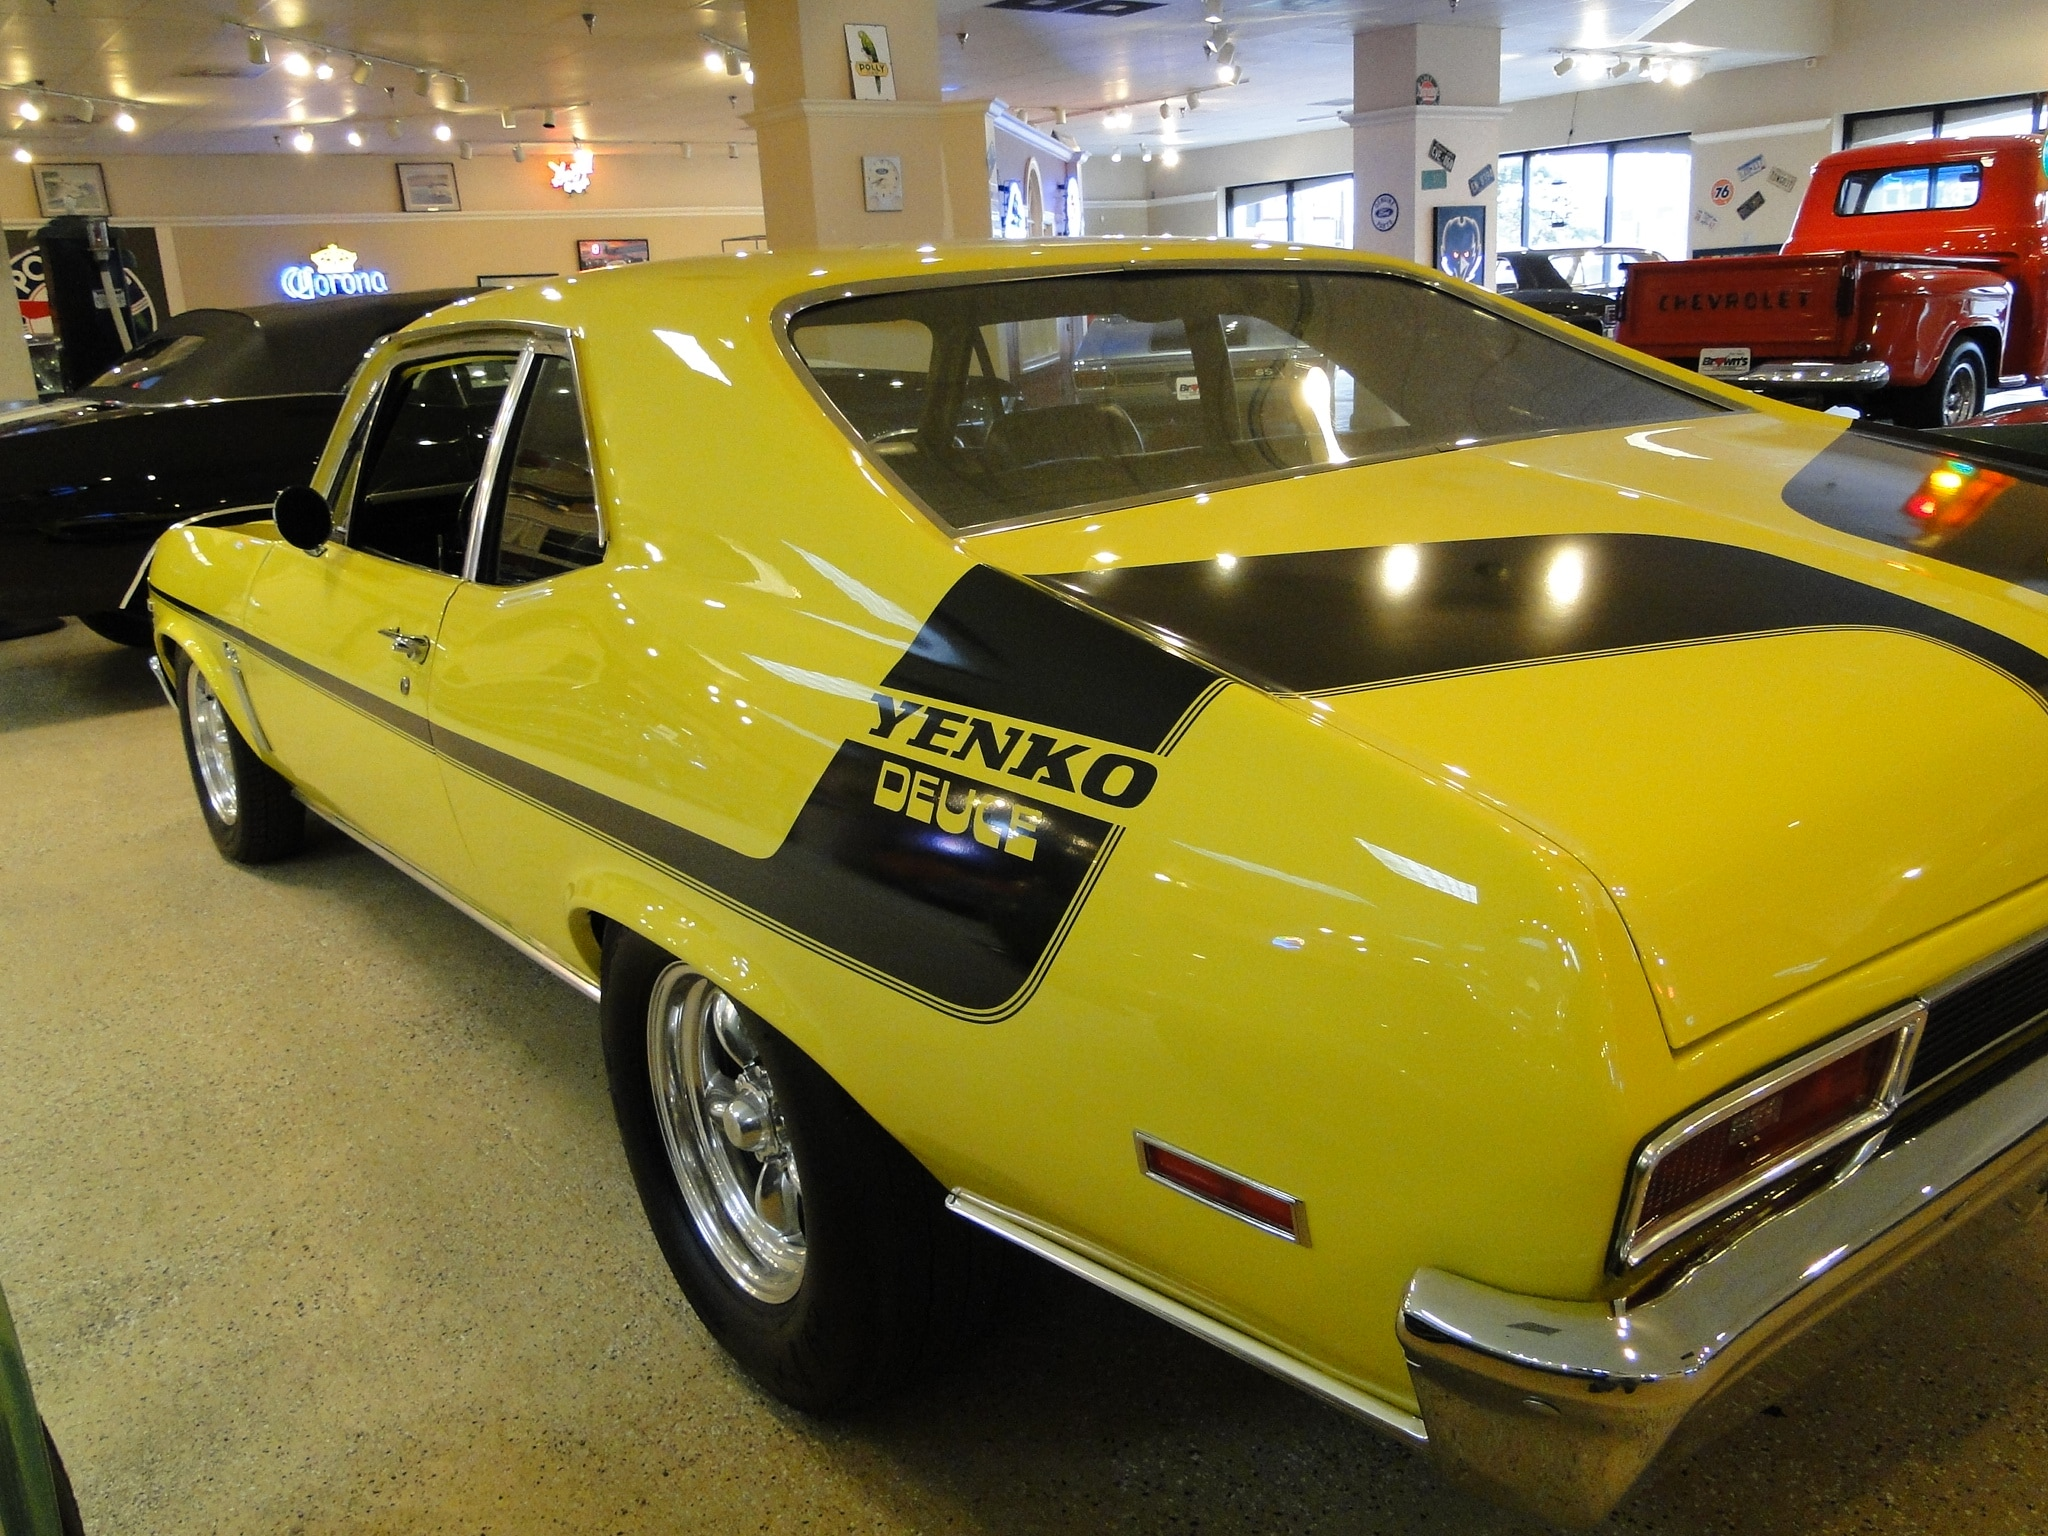 Chevy Dealerships In Va Used 1970 Chevrolet Nova Yenko Tribute SOLD! For Sale ...